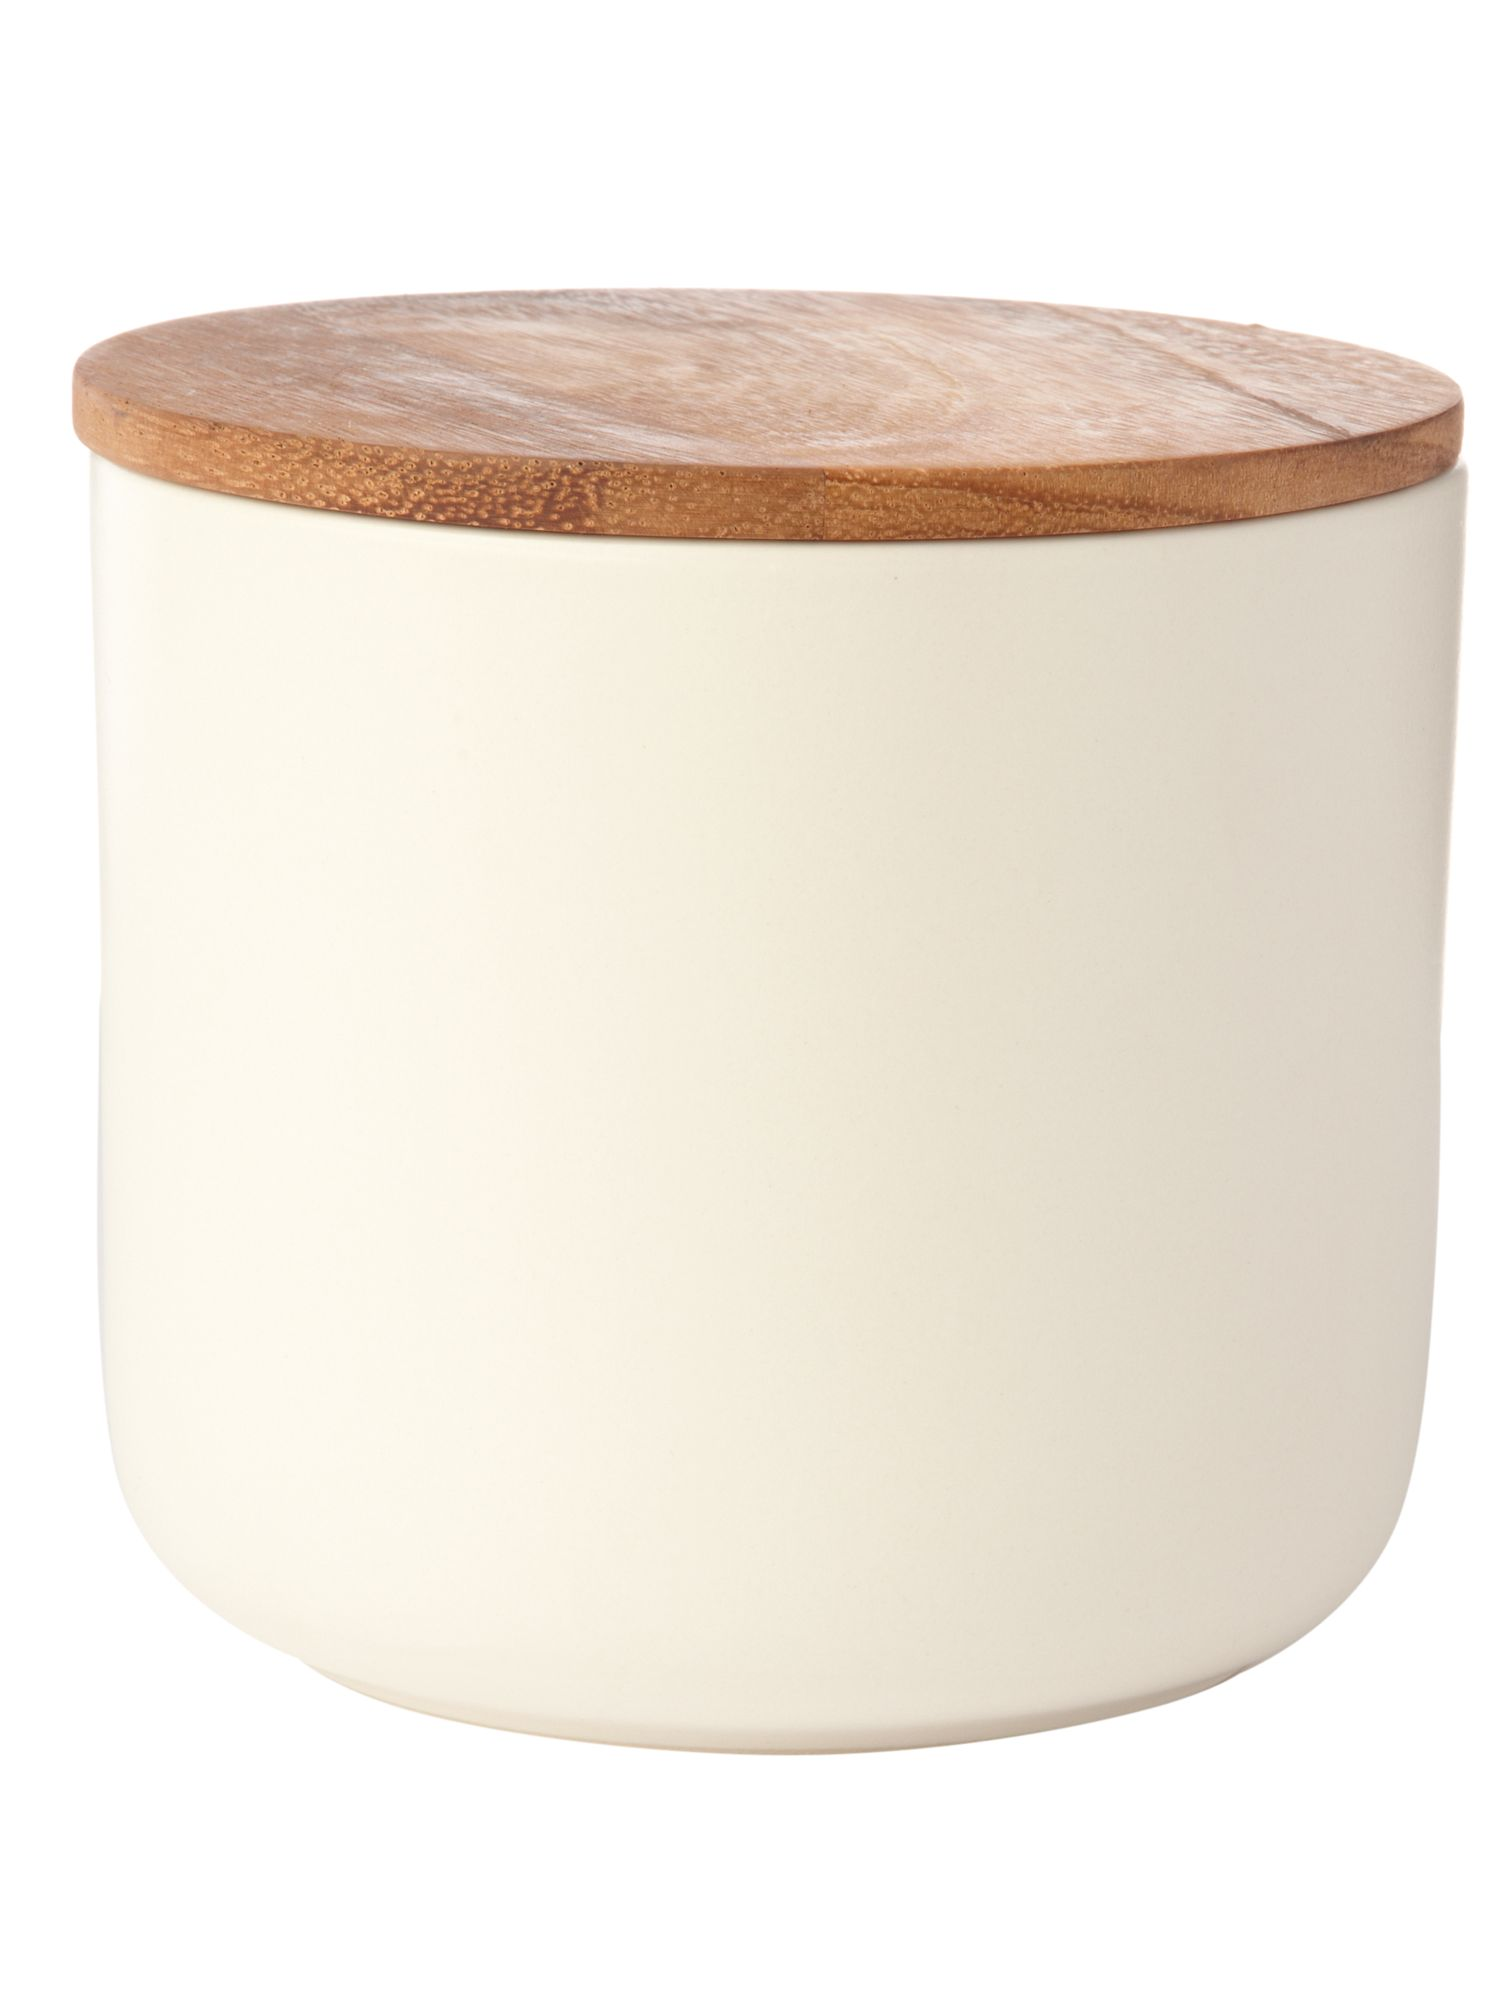 Linea Daley cream storage jar with acacia Lid product image